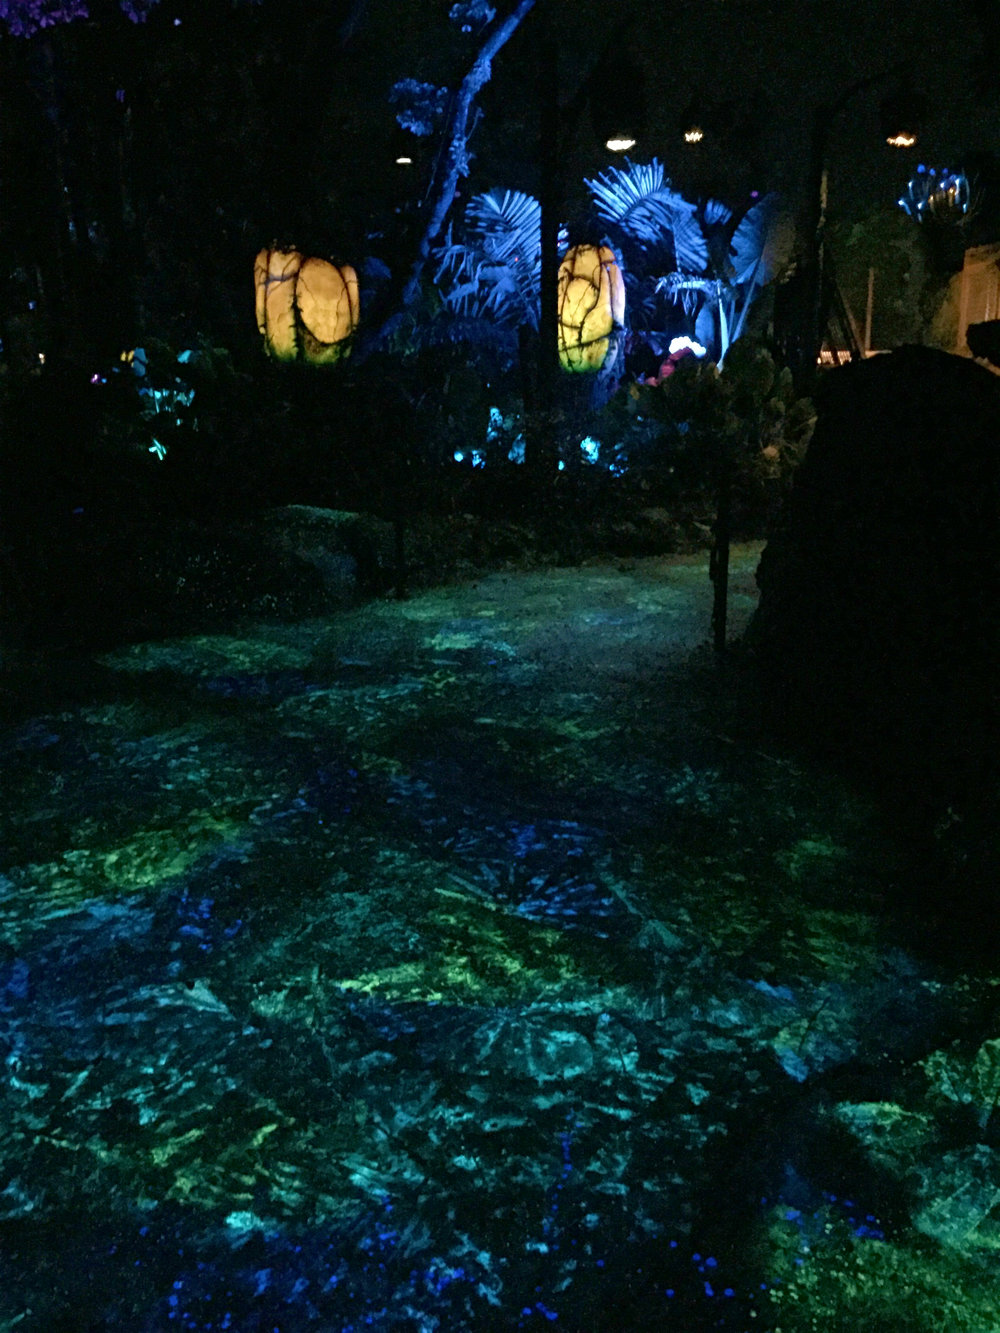 This photo shows the backlighting that is used to light up the Pandora park at night. It honestly doesn't do it justice, though. You'll just have to see it in person to get the whole affect!